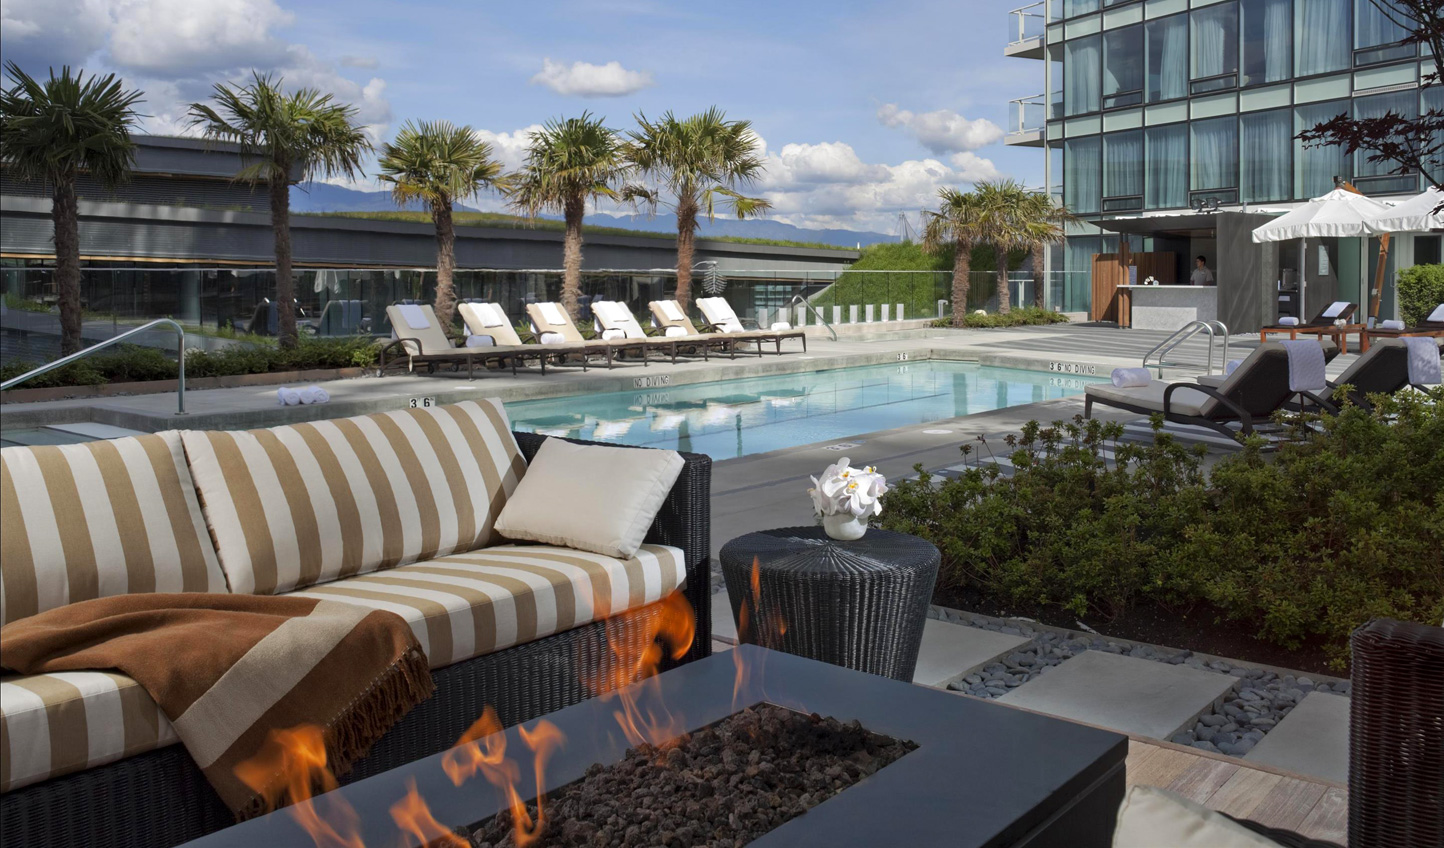 Relax by the pool with a warm fire crackling nearby